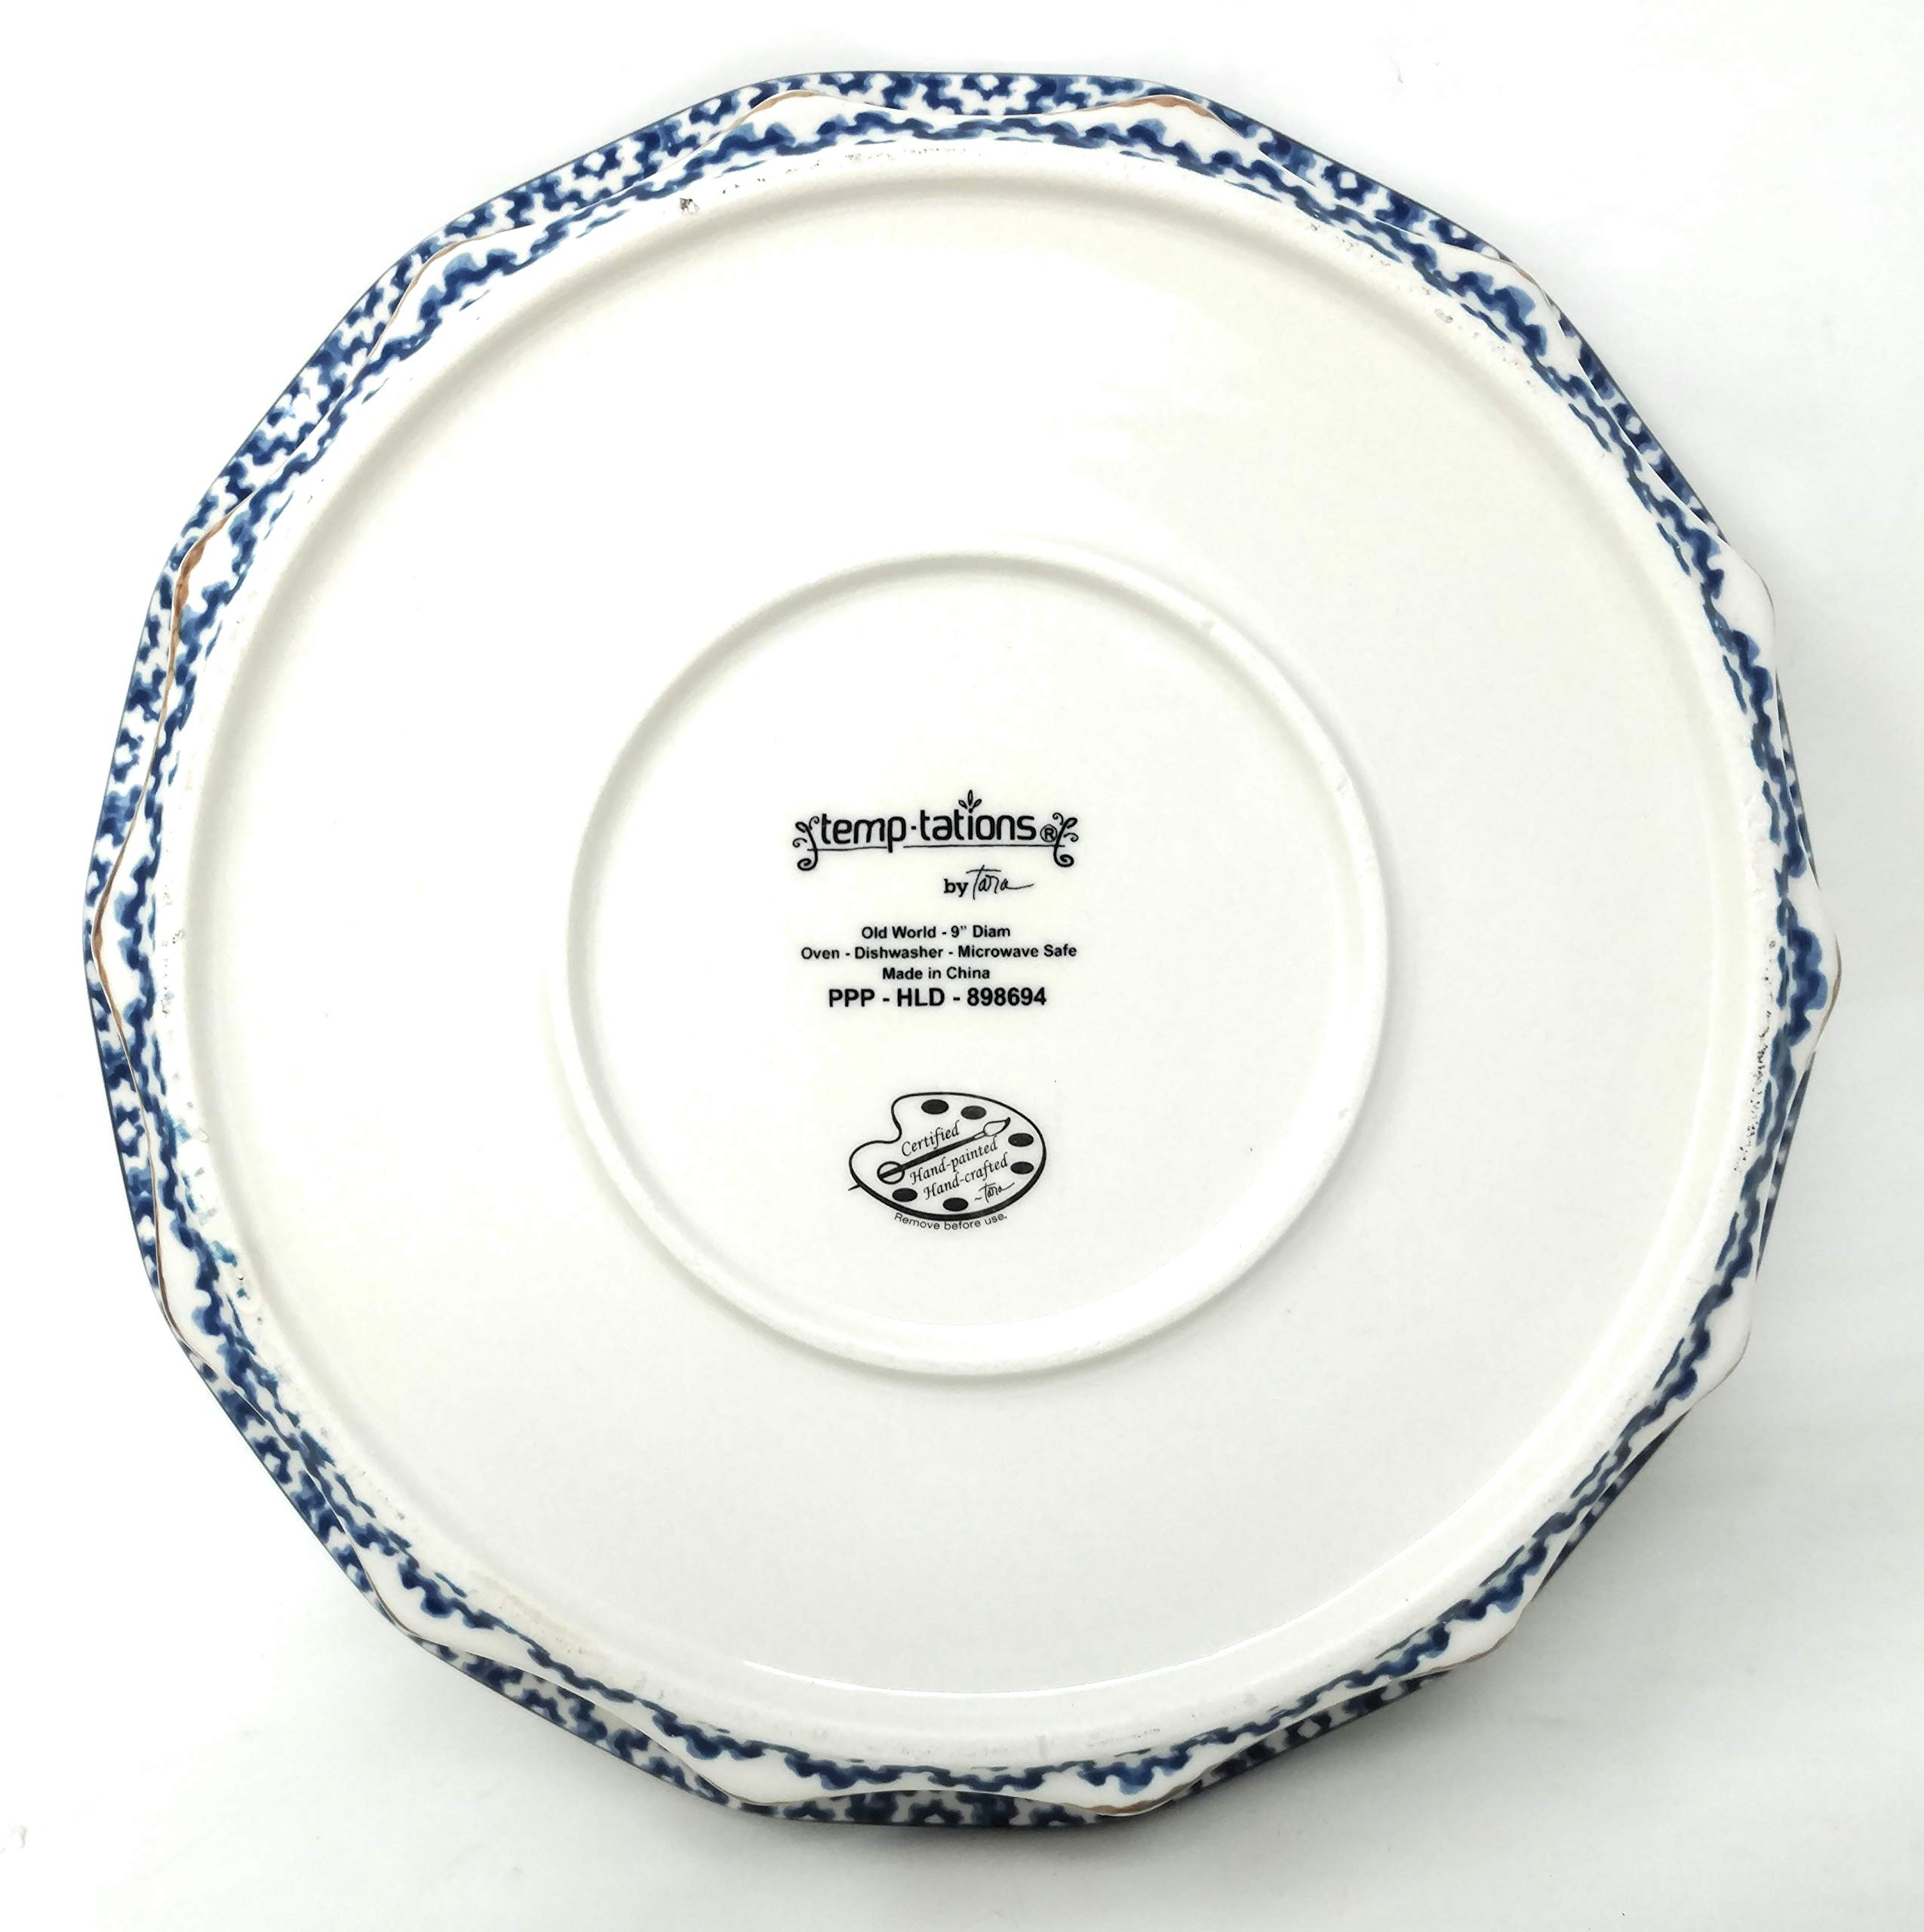 Temp-tations 10'' x 2.25'' Pie Pan w/Cover, Scalloped, Deep Dish Pizza or Quiche (Old World Blue) by Stoneware (Image #7)